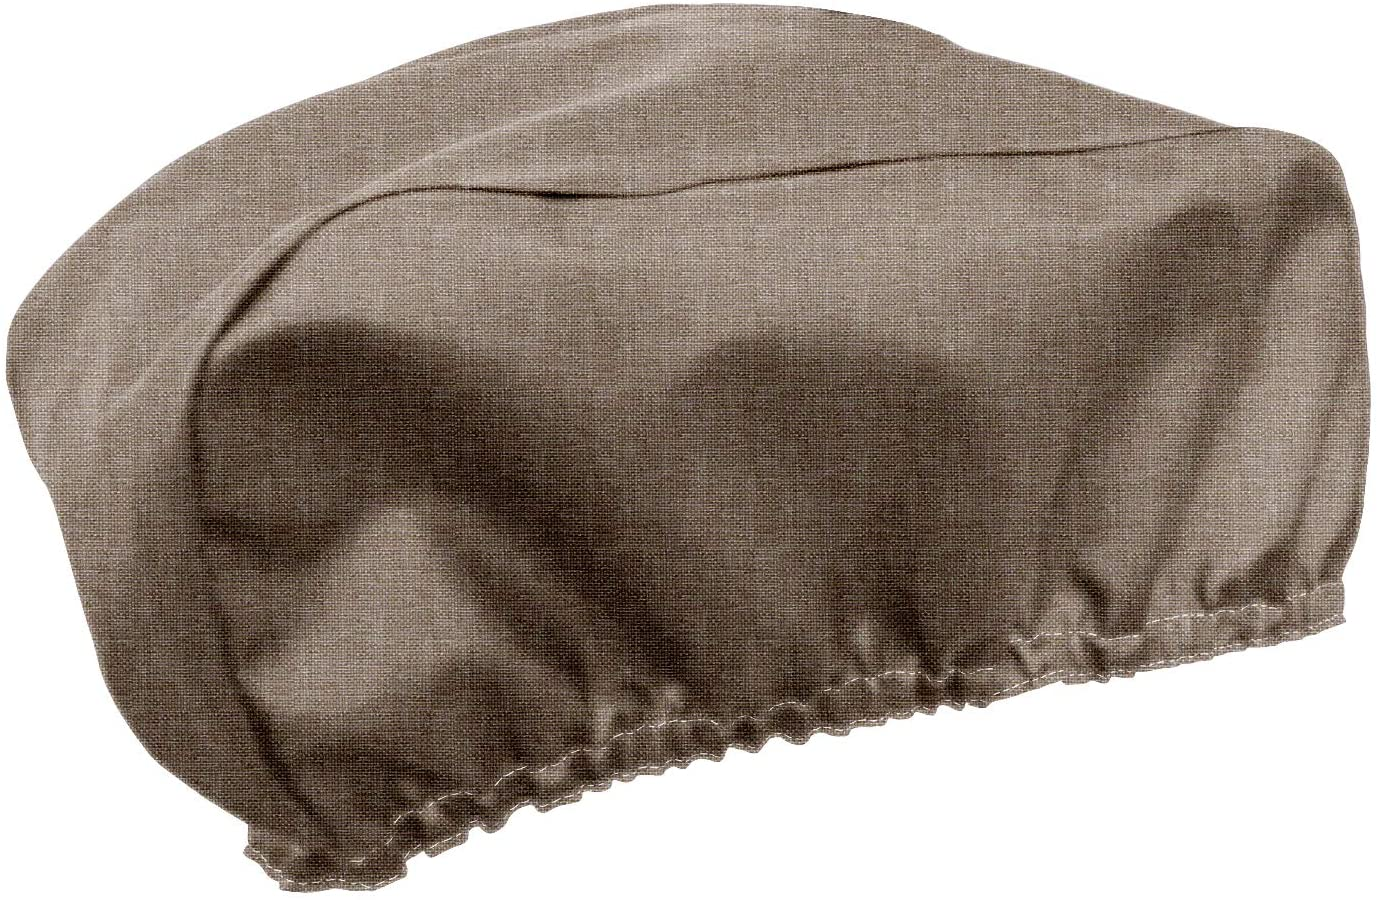 """Heavy Duty Oxford Winch Cover, Waterproof, Dust-Proof,UV -Resistant Universal Winch Protective Cover with Electric Compatible with Winches Up to 17500 Lbs, 24"""" W x 10"""" H x 7"""" D (Khaki)"""